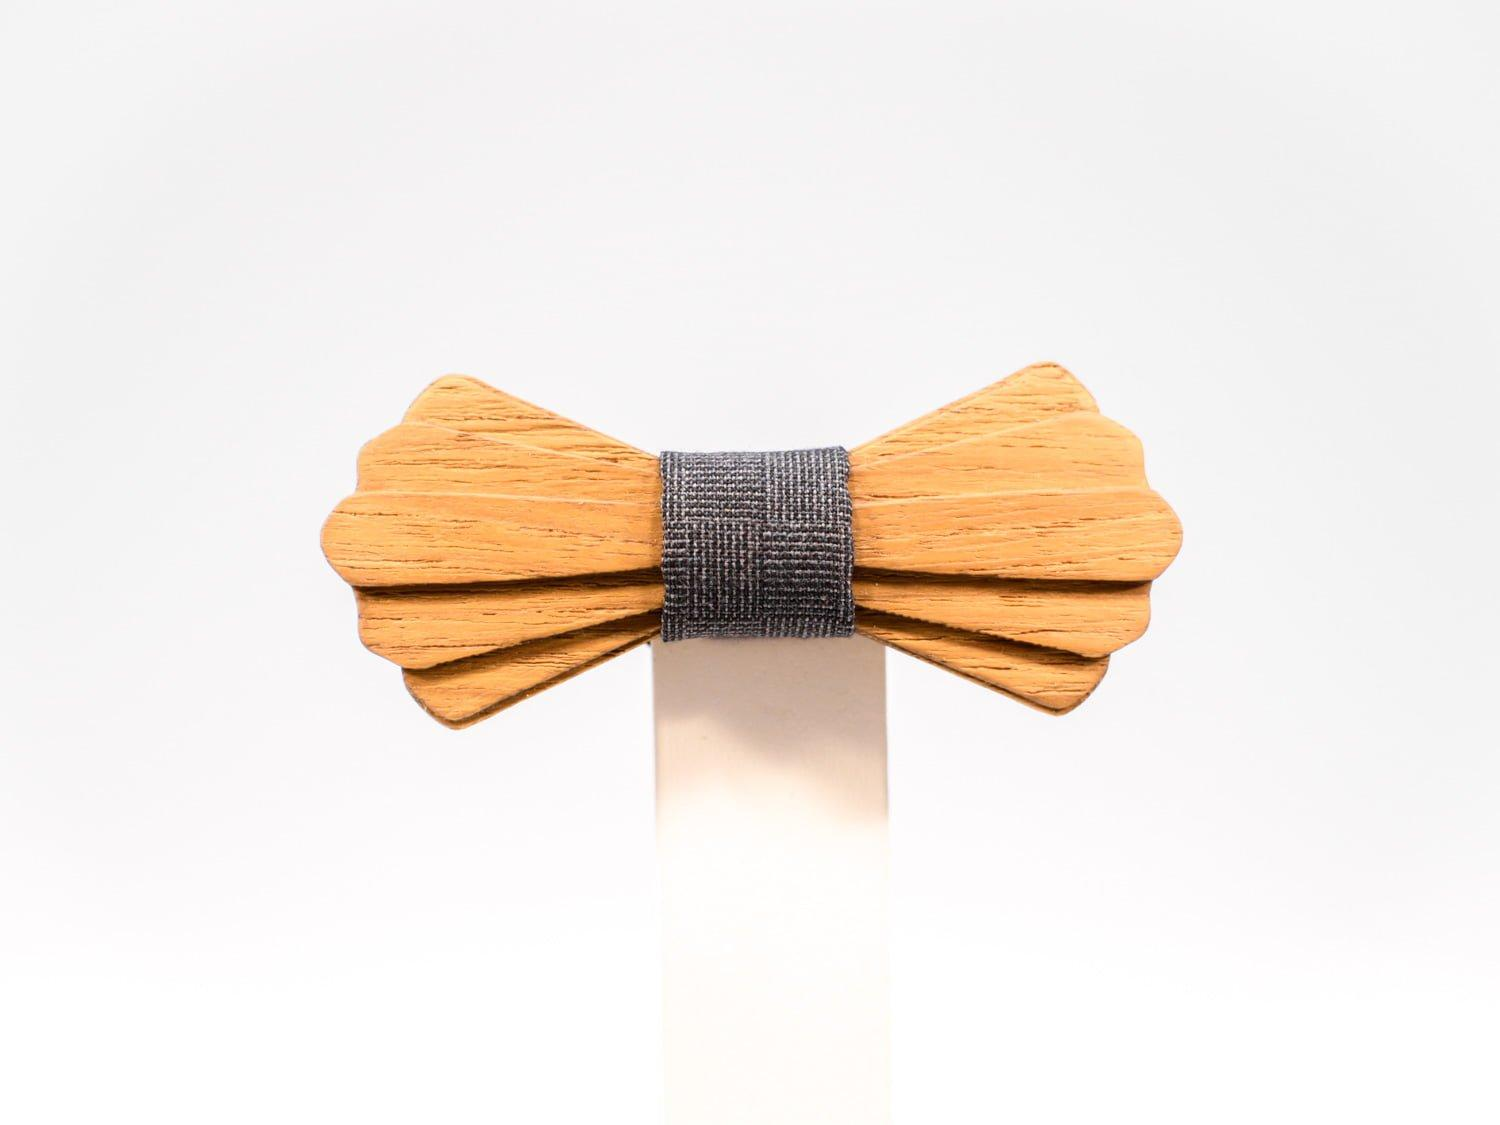 Jr. SÖÖR Elias neckwear in teak with dark grey fabric. A unique wooden bowtie